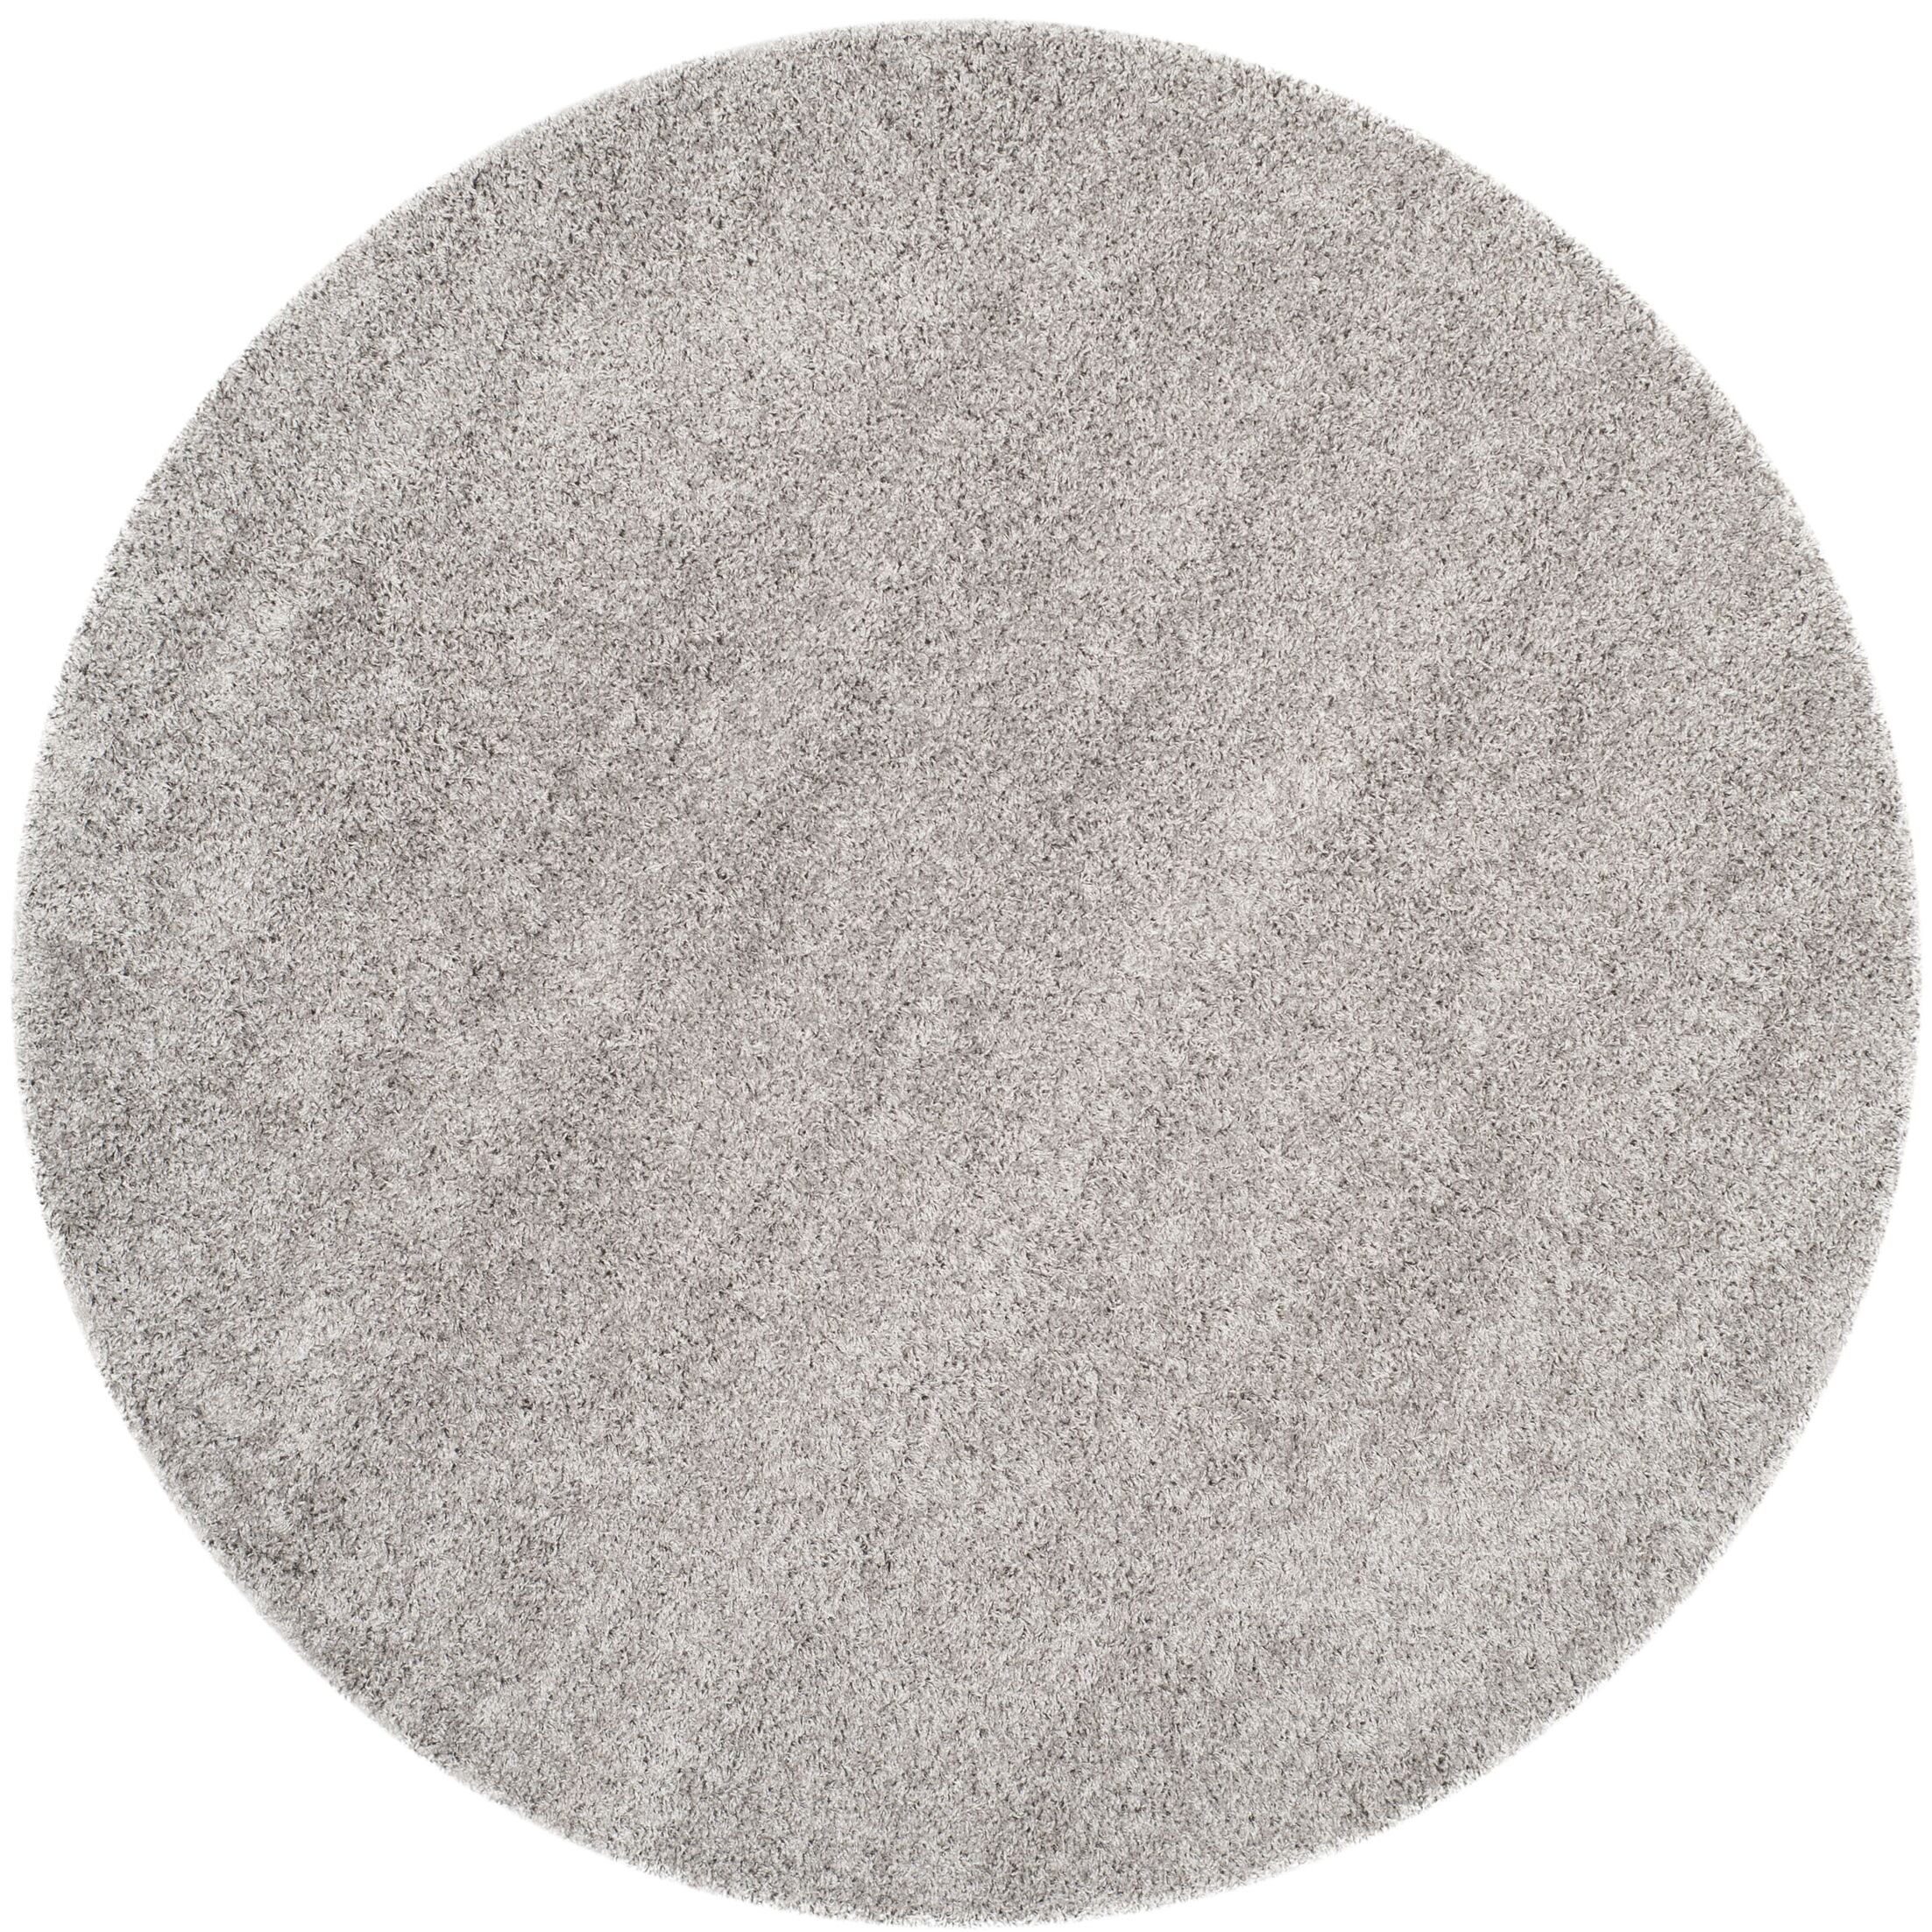 Mccall Silver Shag Area Rug Rug Size: Round 6'7